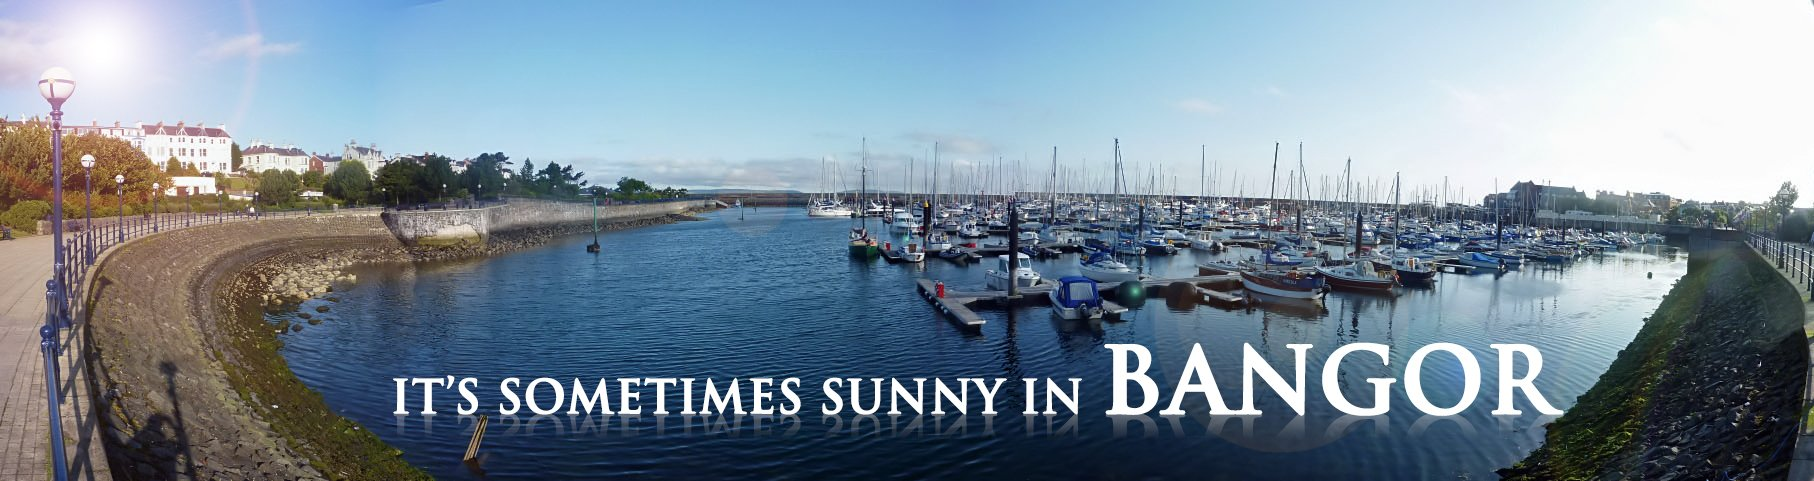 Bangor Northern Ireland: Tourism and Travel Blog from Bangor NI - It's Sometimes Sunny in Bangor: A Tourism and Travel Blog from the Sometimes Sunny Seaside Town of Bangor Northern Ireland